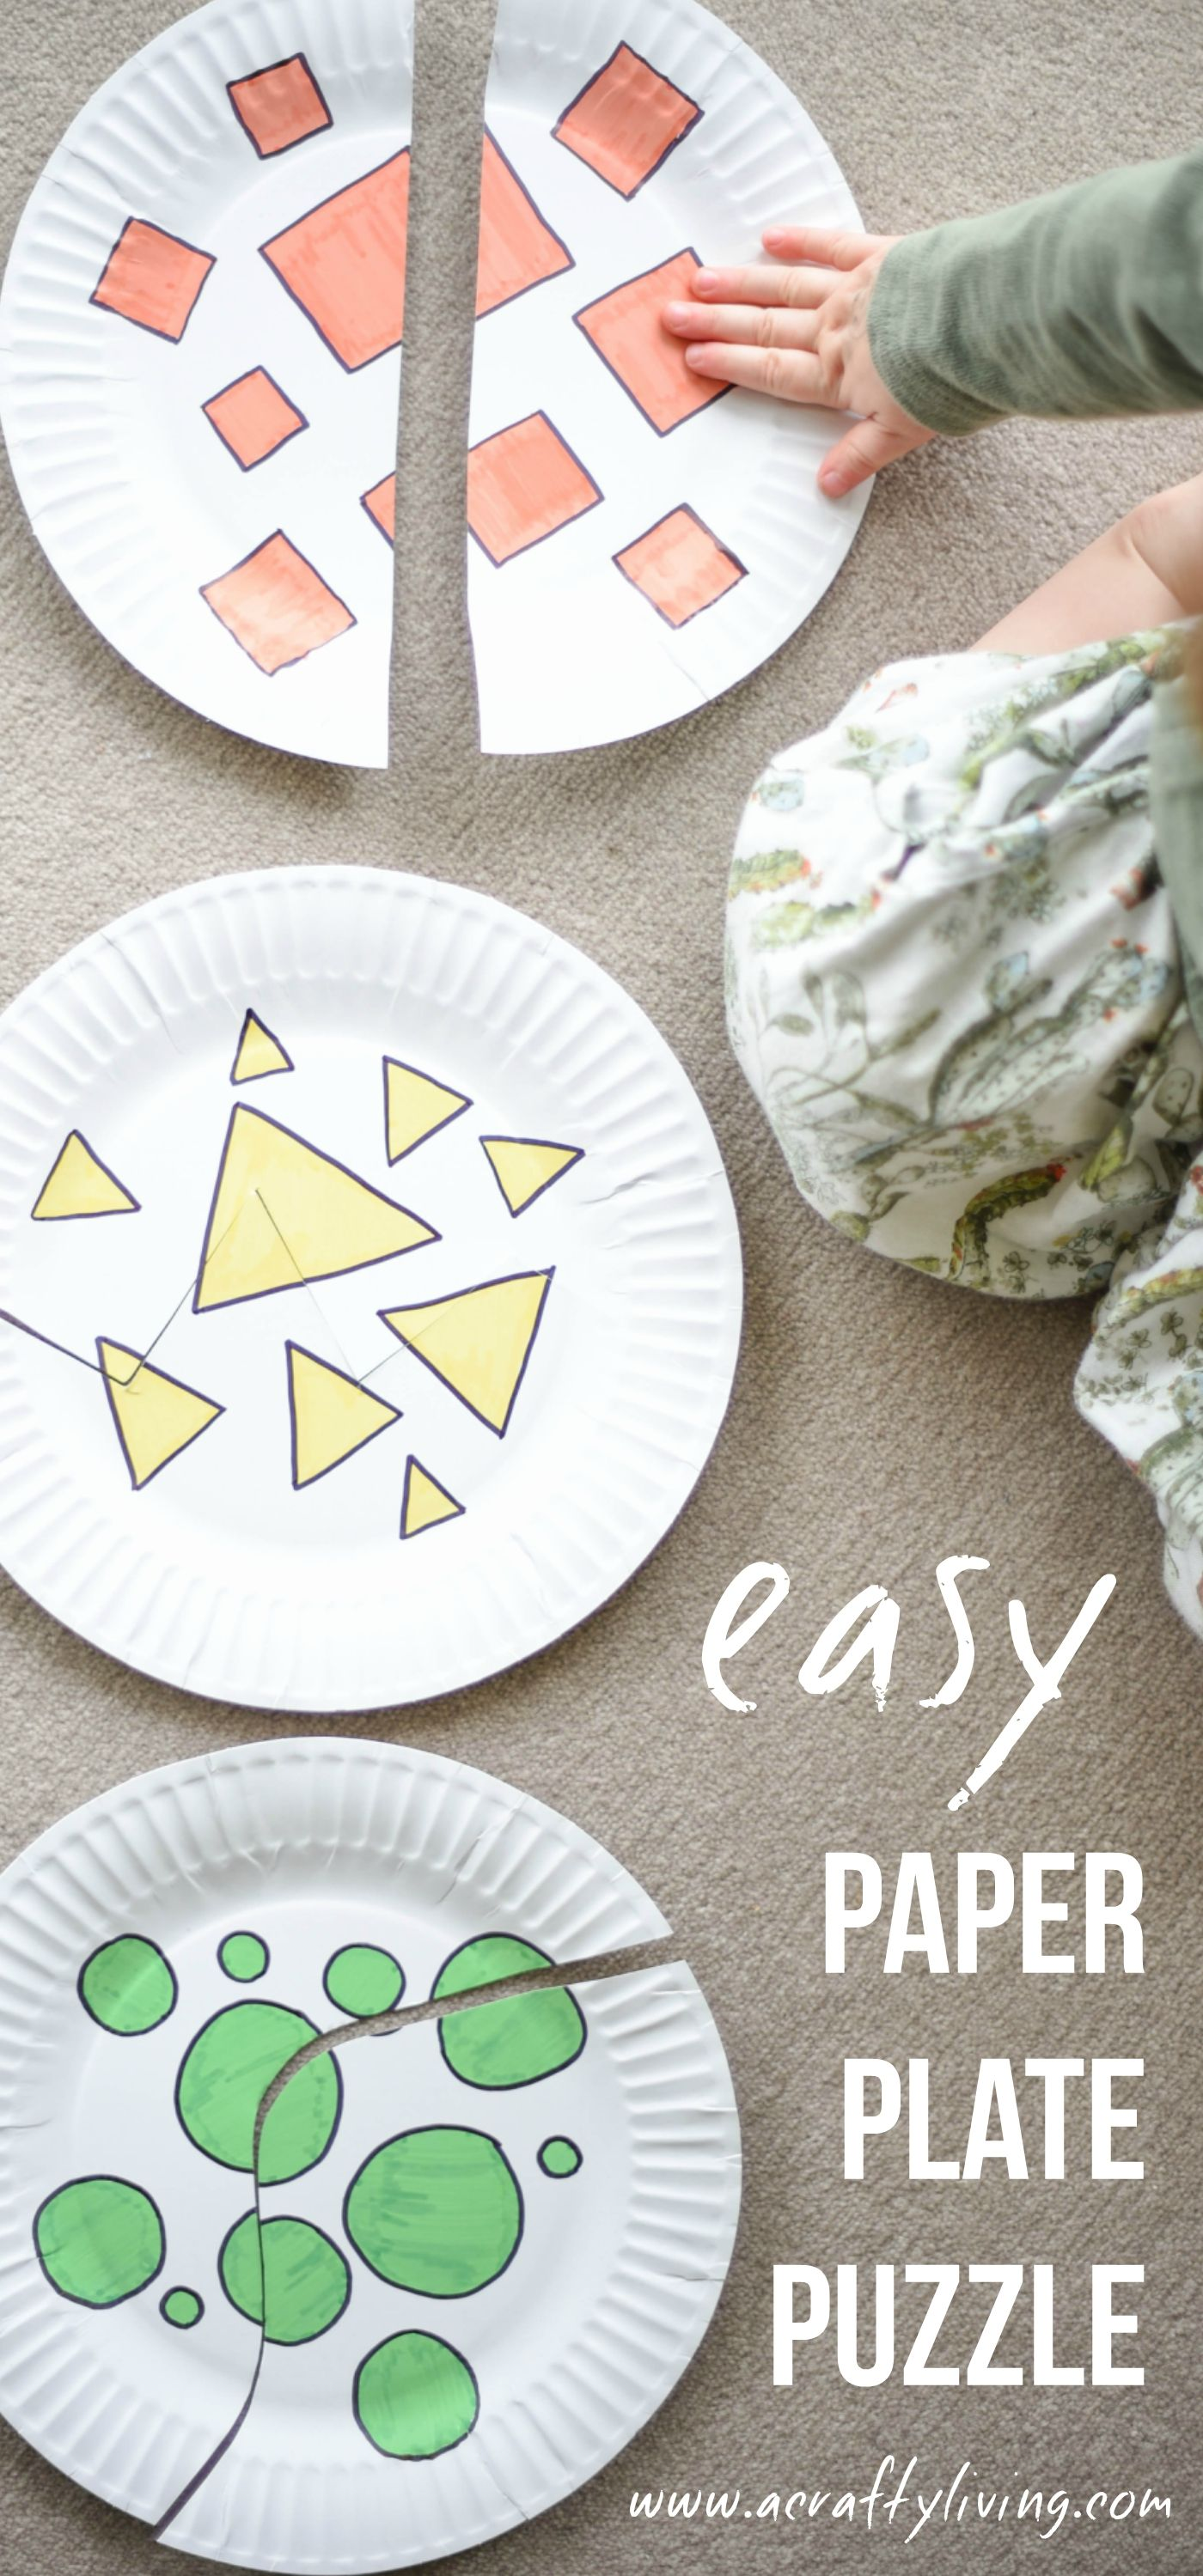 Easy Colour Amp Shape Recognition Paper Plate Puzzle For